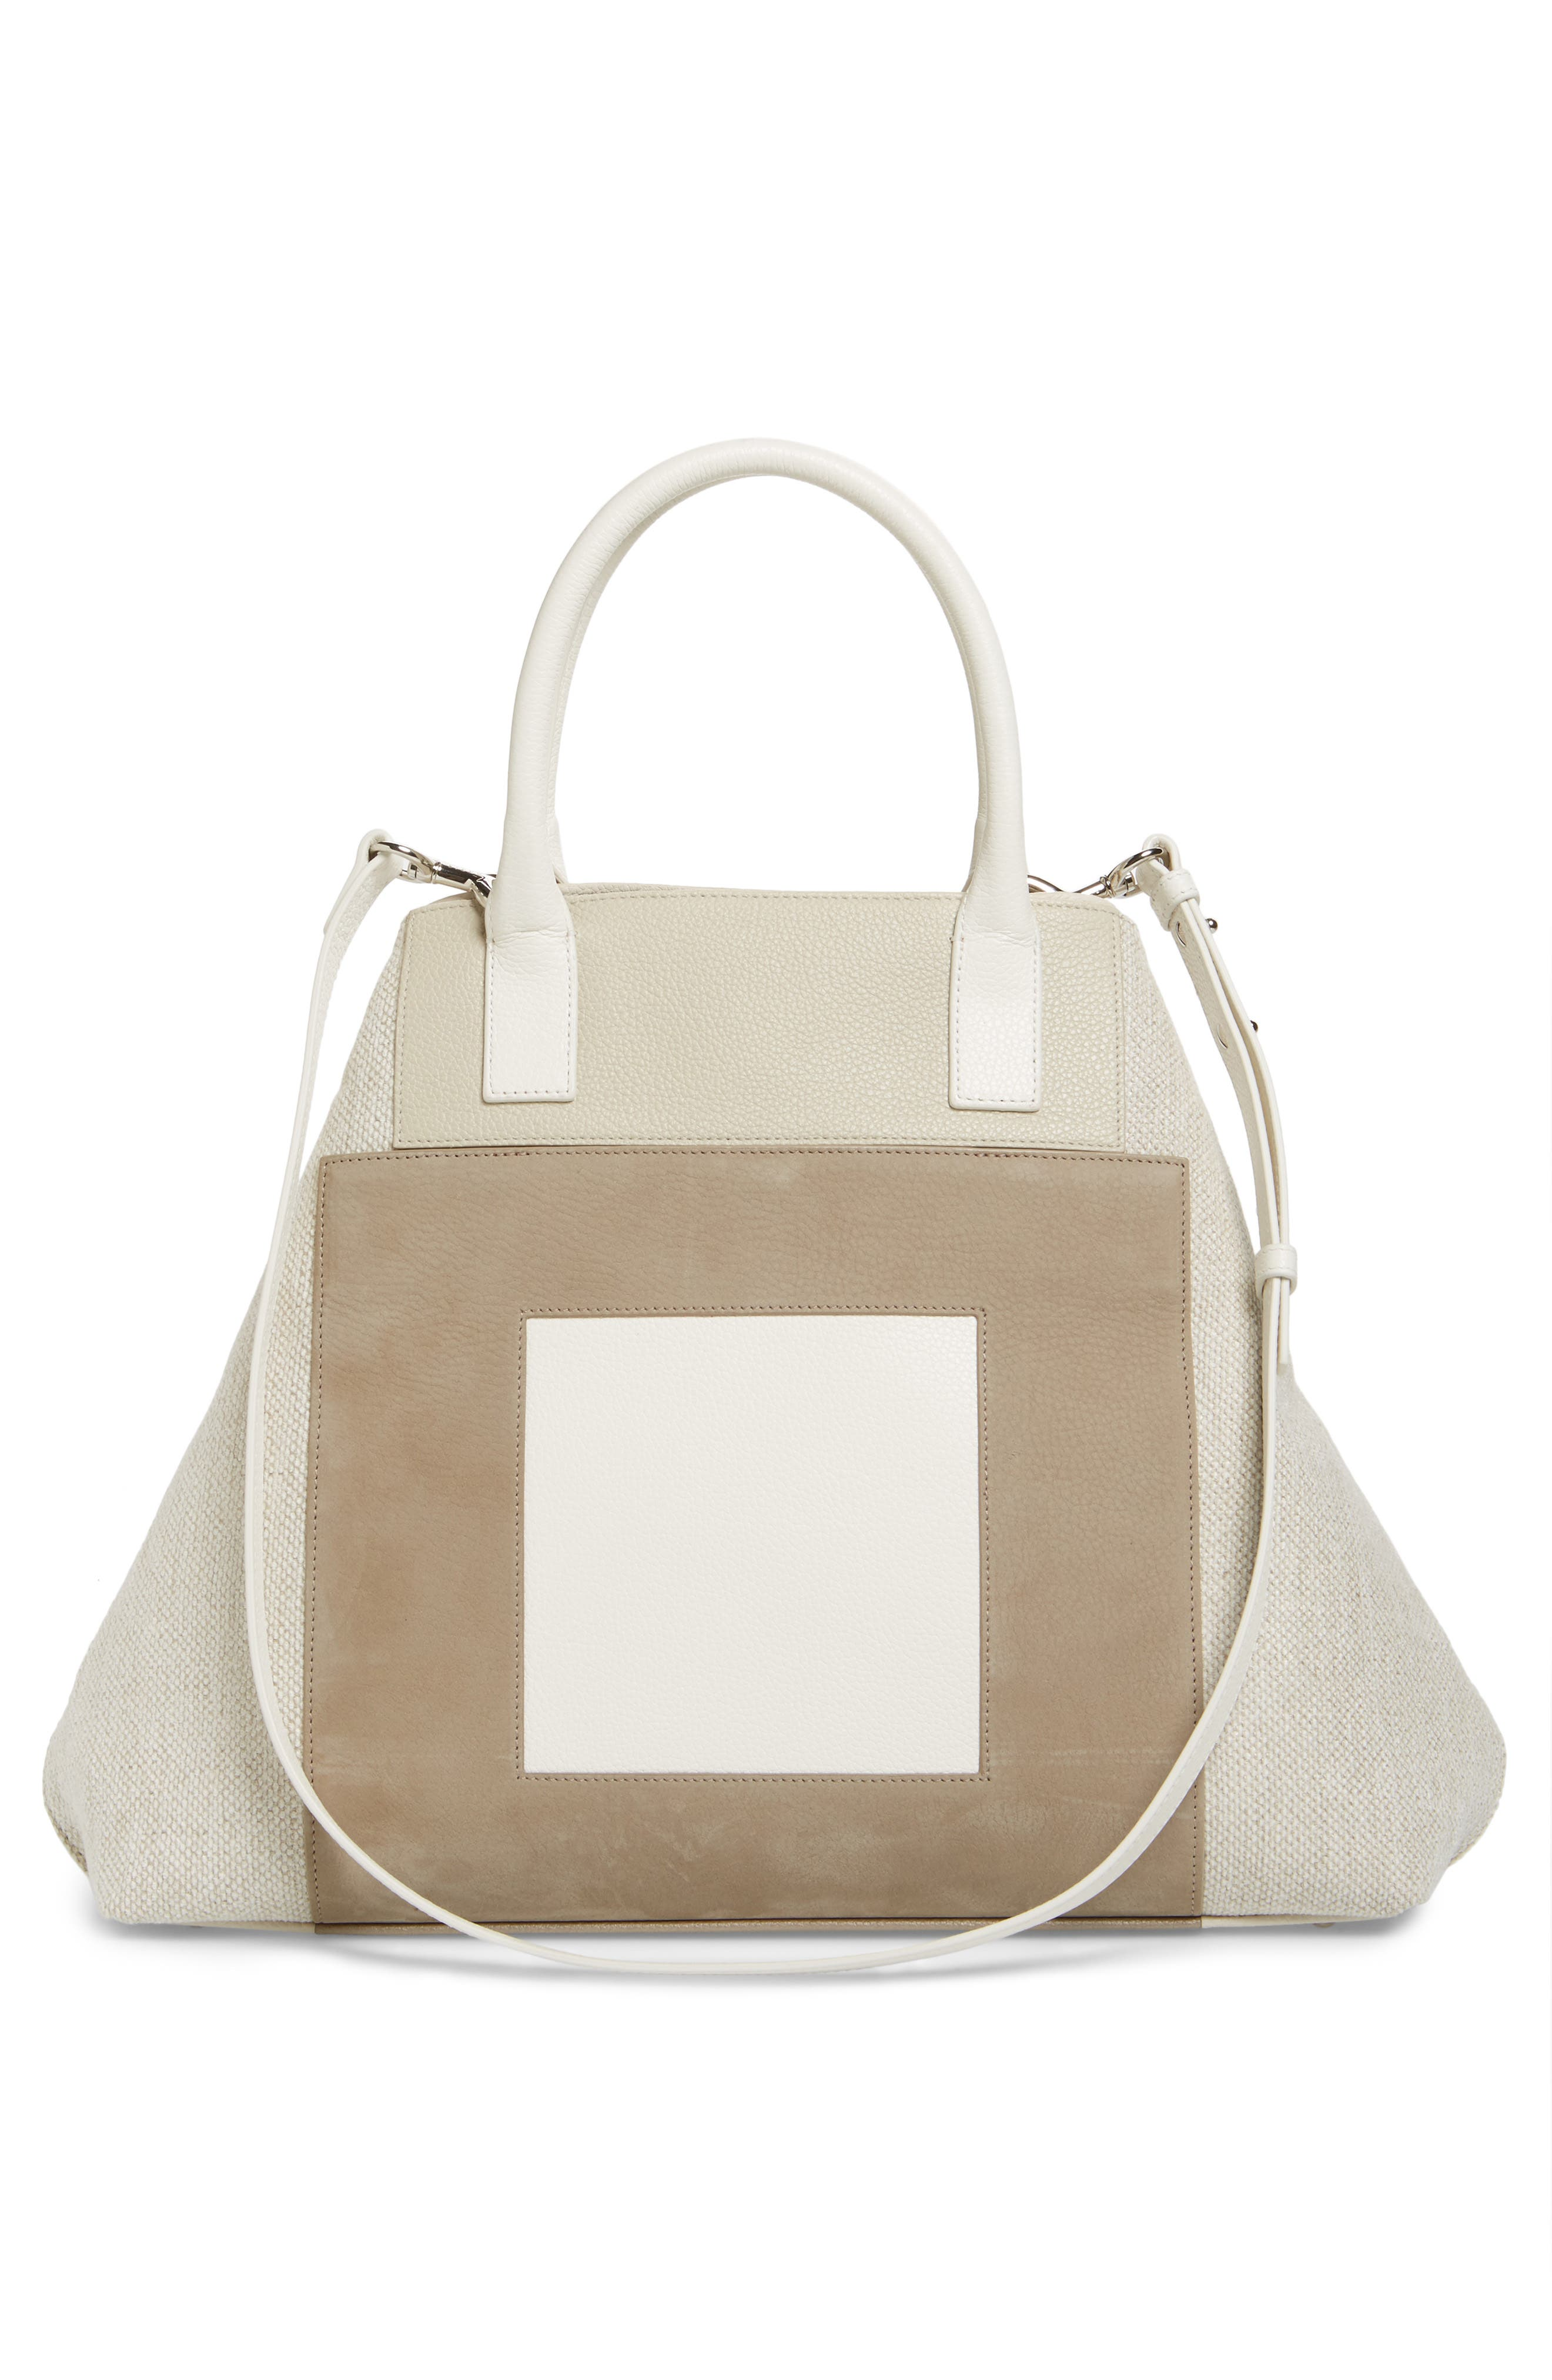 Medium AI Leather & Canvas Tote,                             Alternate thumbnail 3, color,                             283